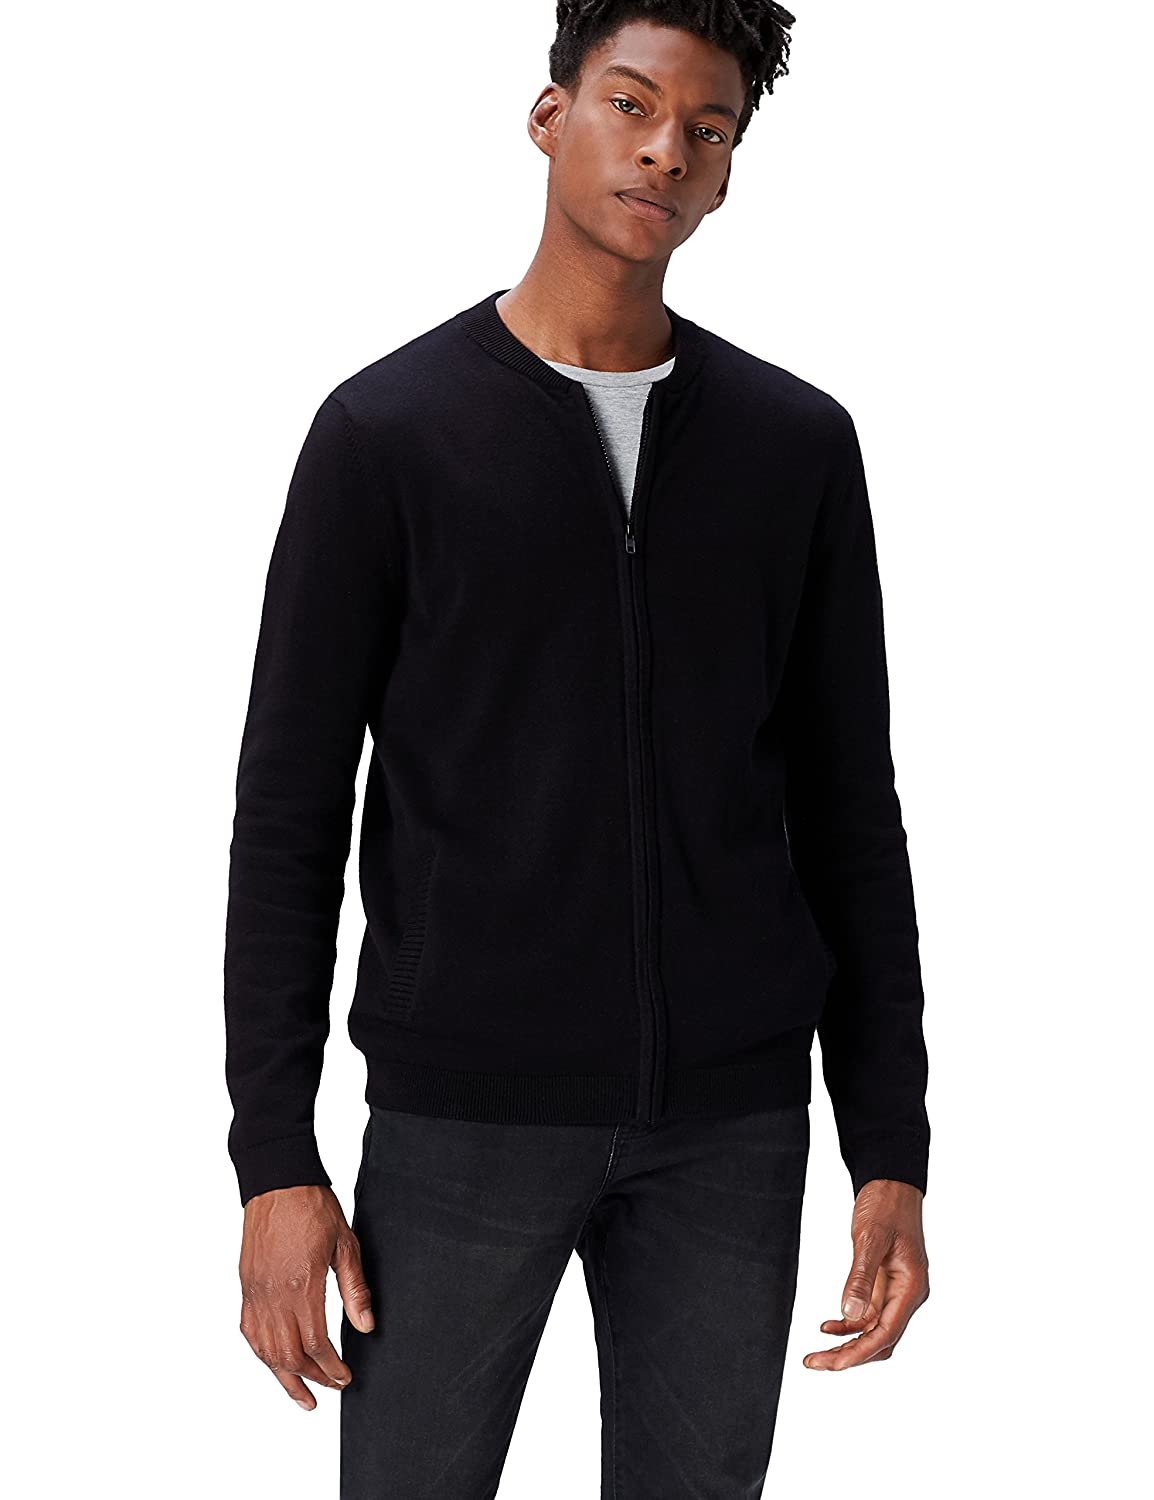 find Brand Mens Cotton Cardigan Sweater in Bomber Jacket Style